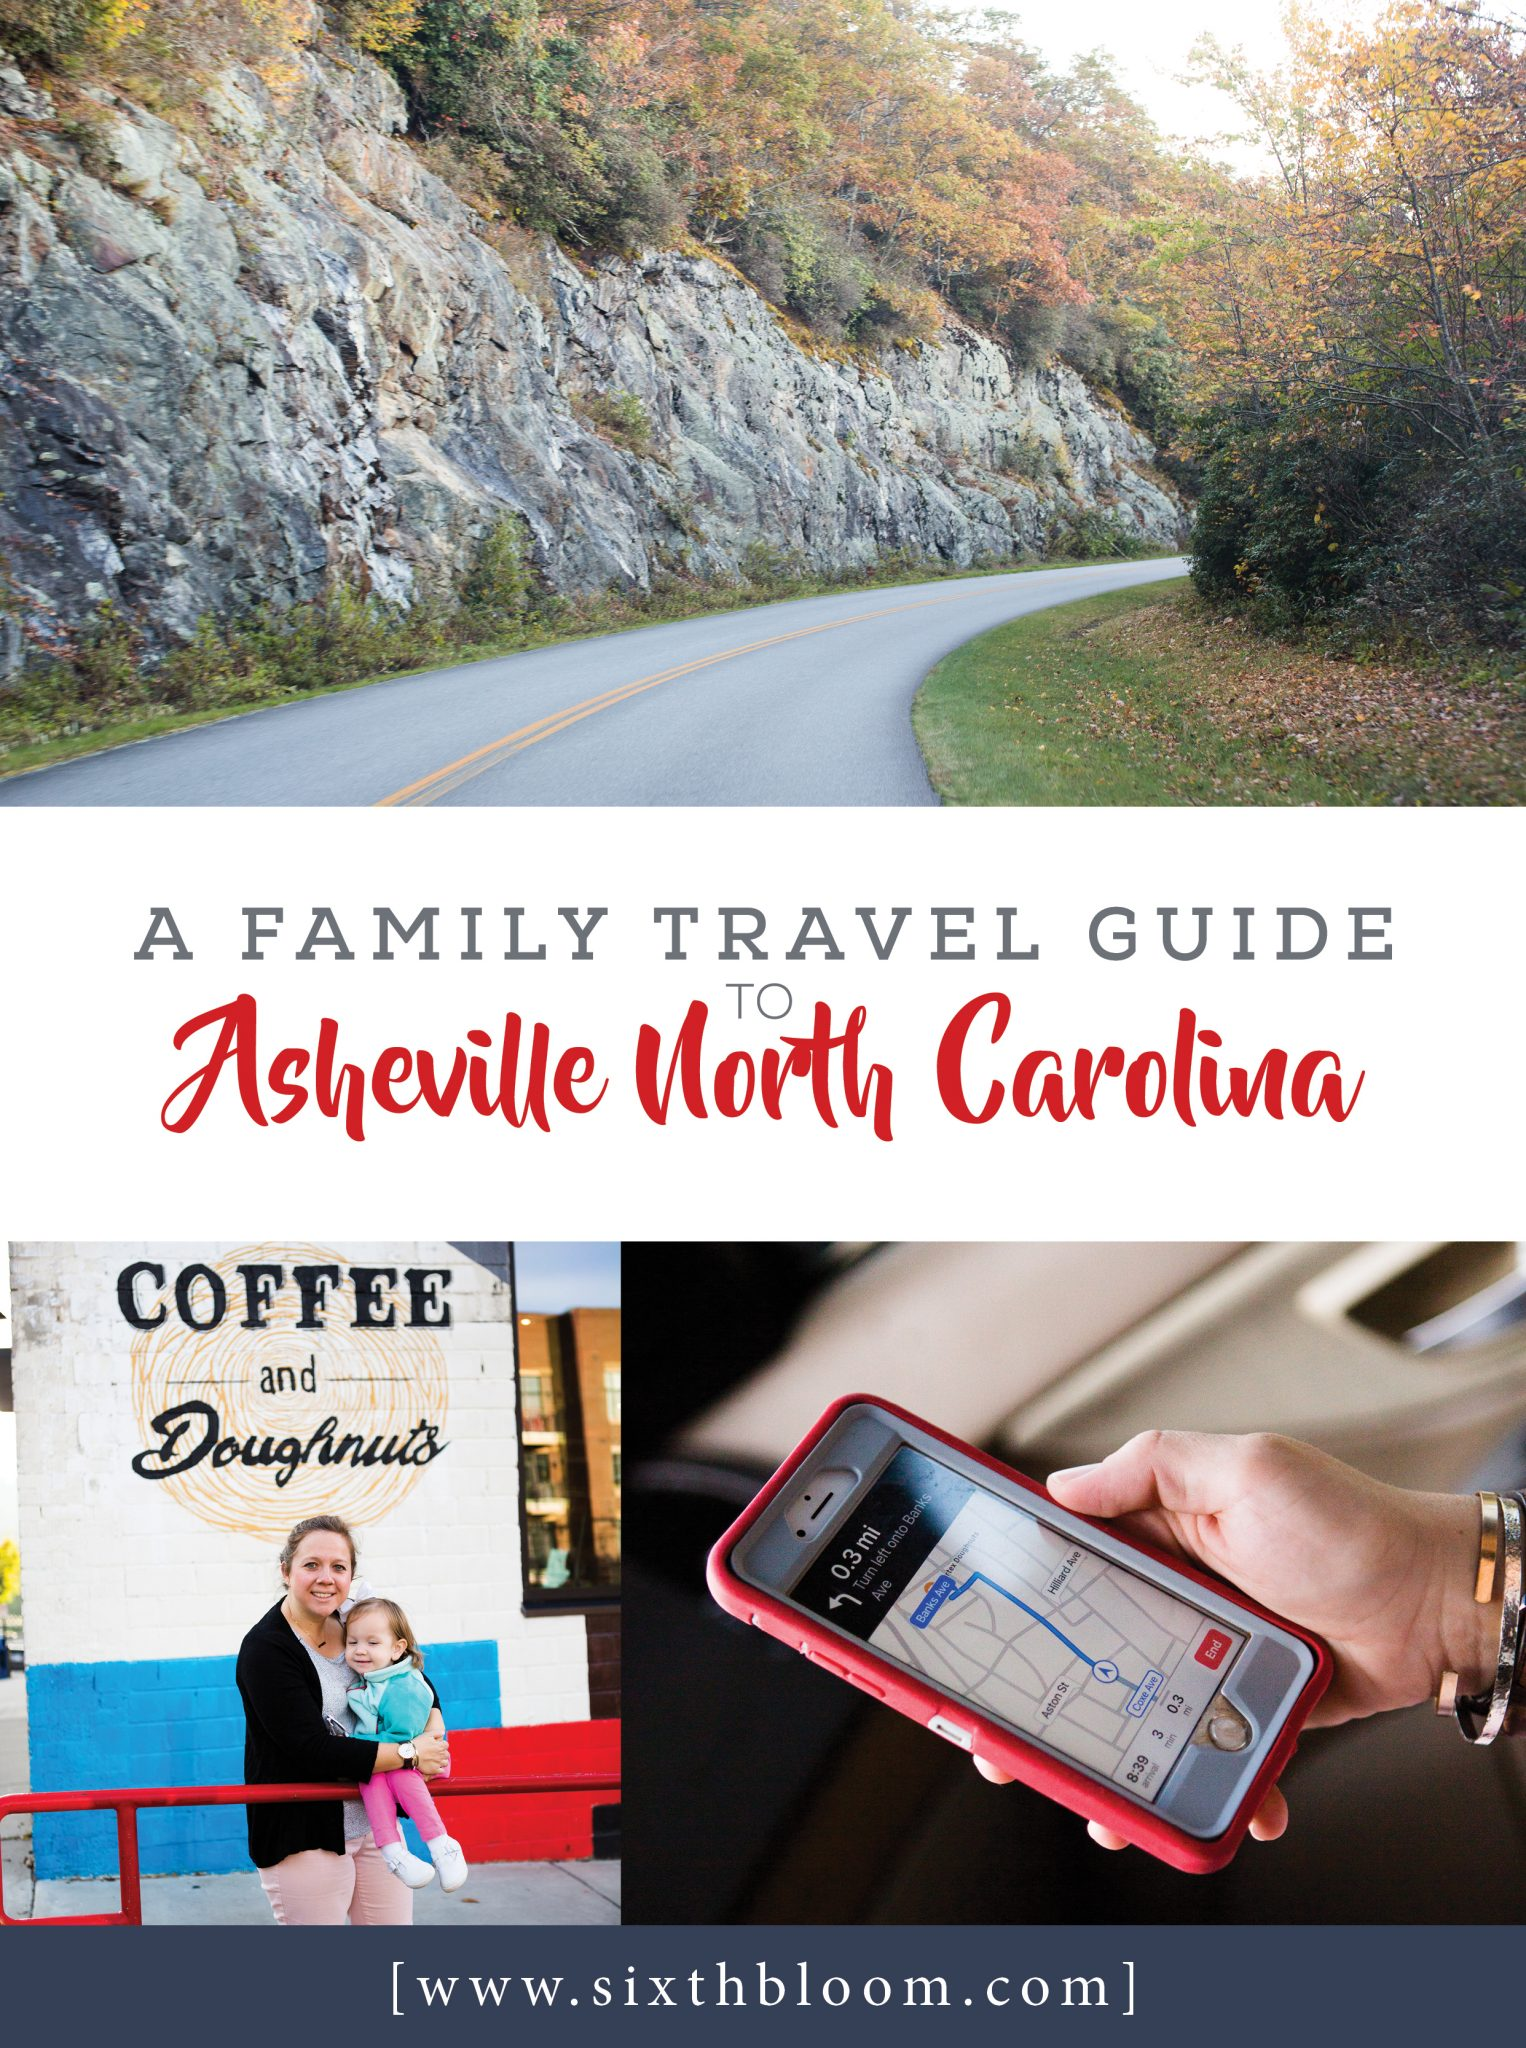 Family Travel Guide to Asheville North Carolina